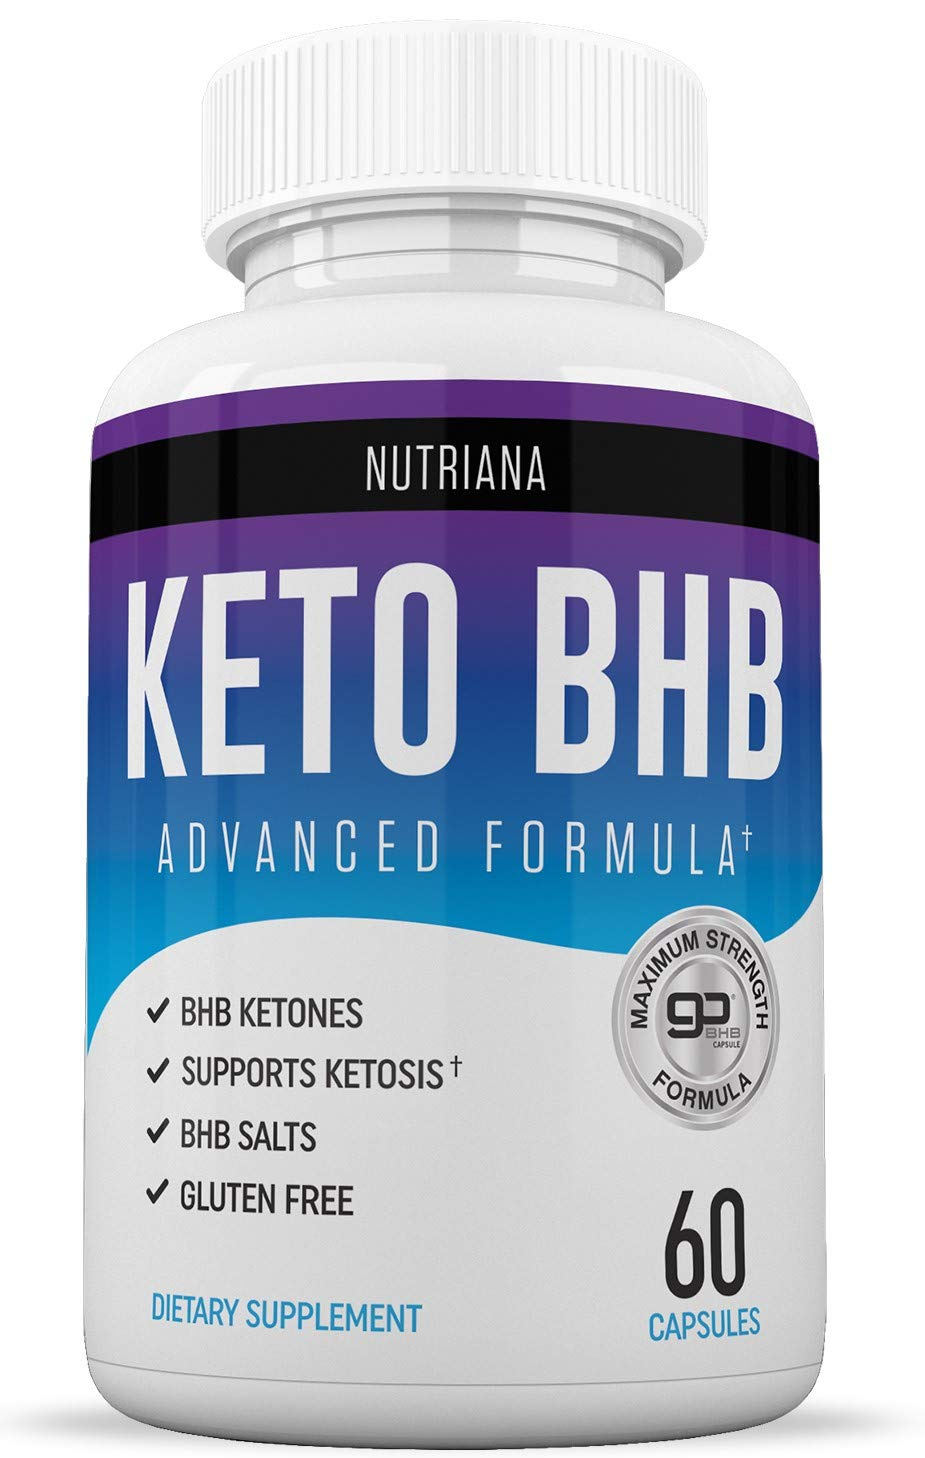 Keto BHB Pills - Ketogenic Keto Pills for Women and Men - Keto Supplement BHB Salts - Ketosis Keto Supplement Exogenous Ketones - Keto Pills 60 Capsules 800 mg by Nutriana